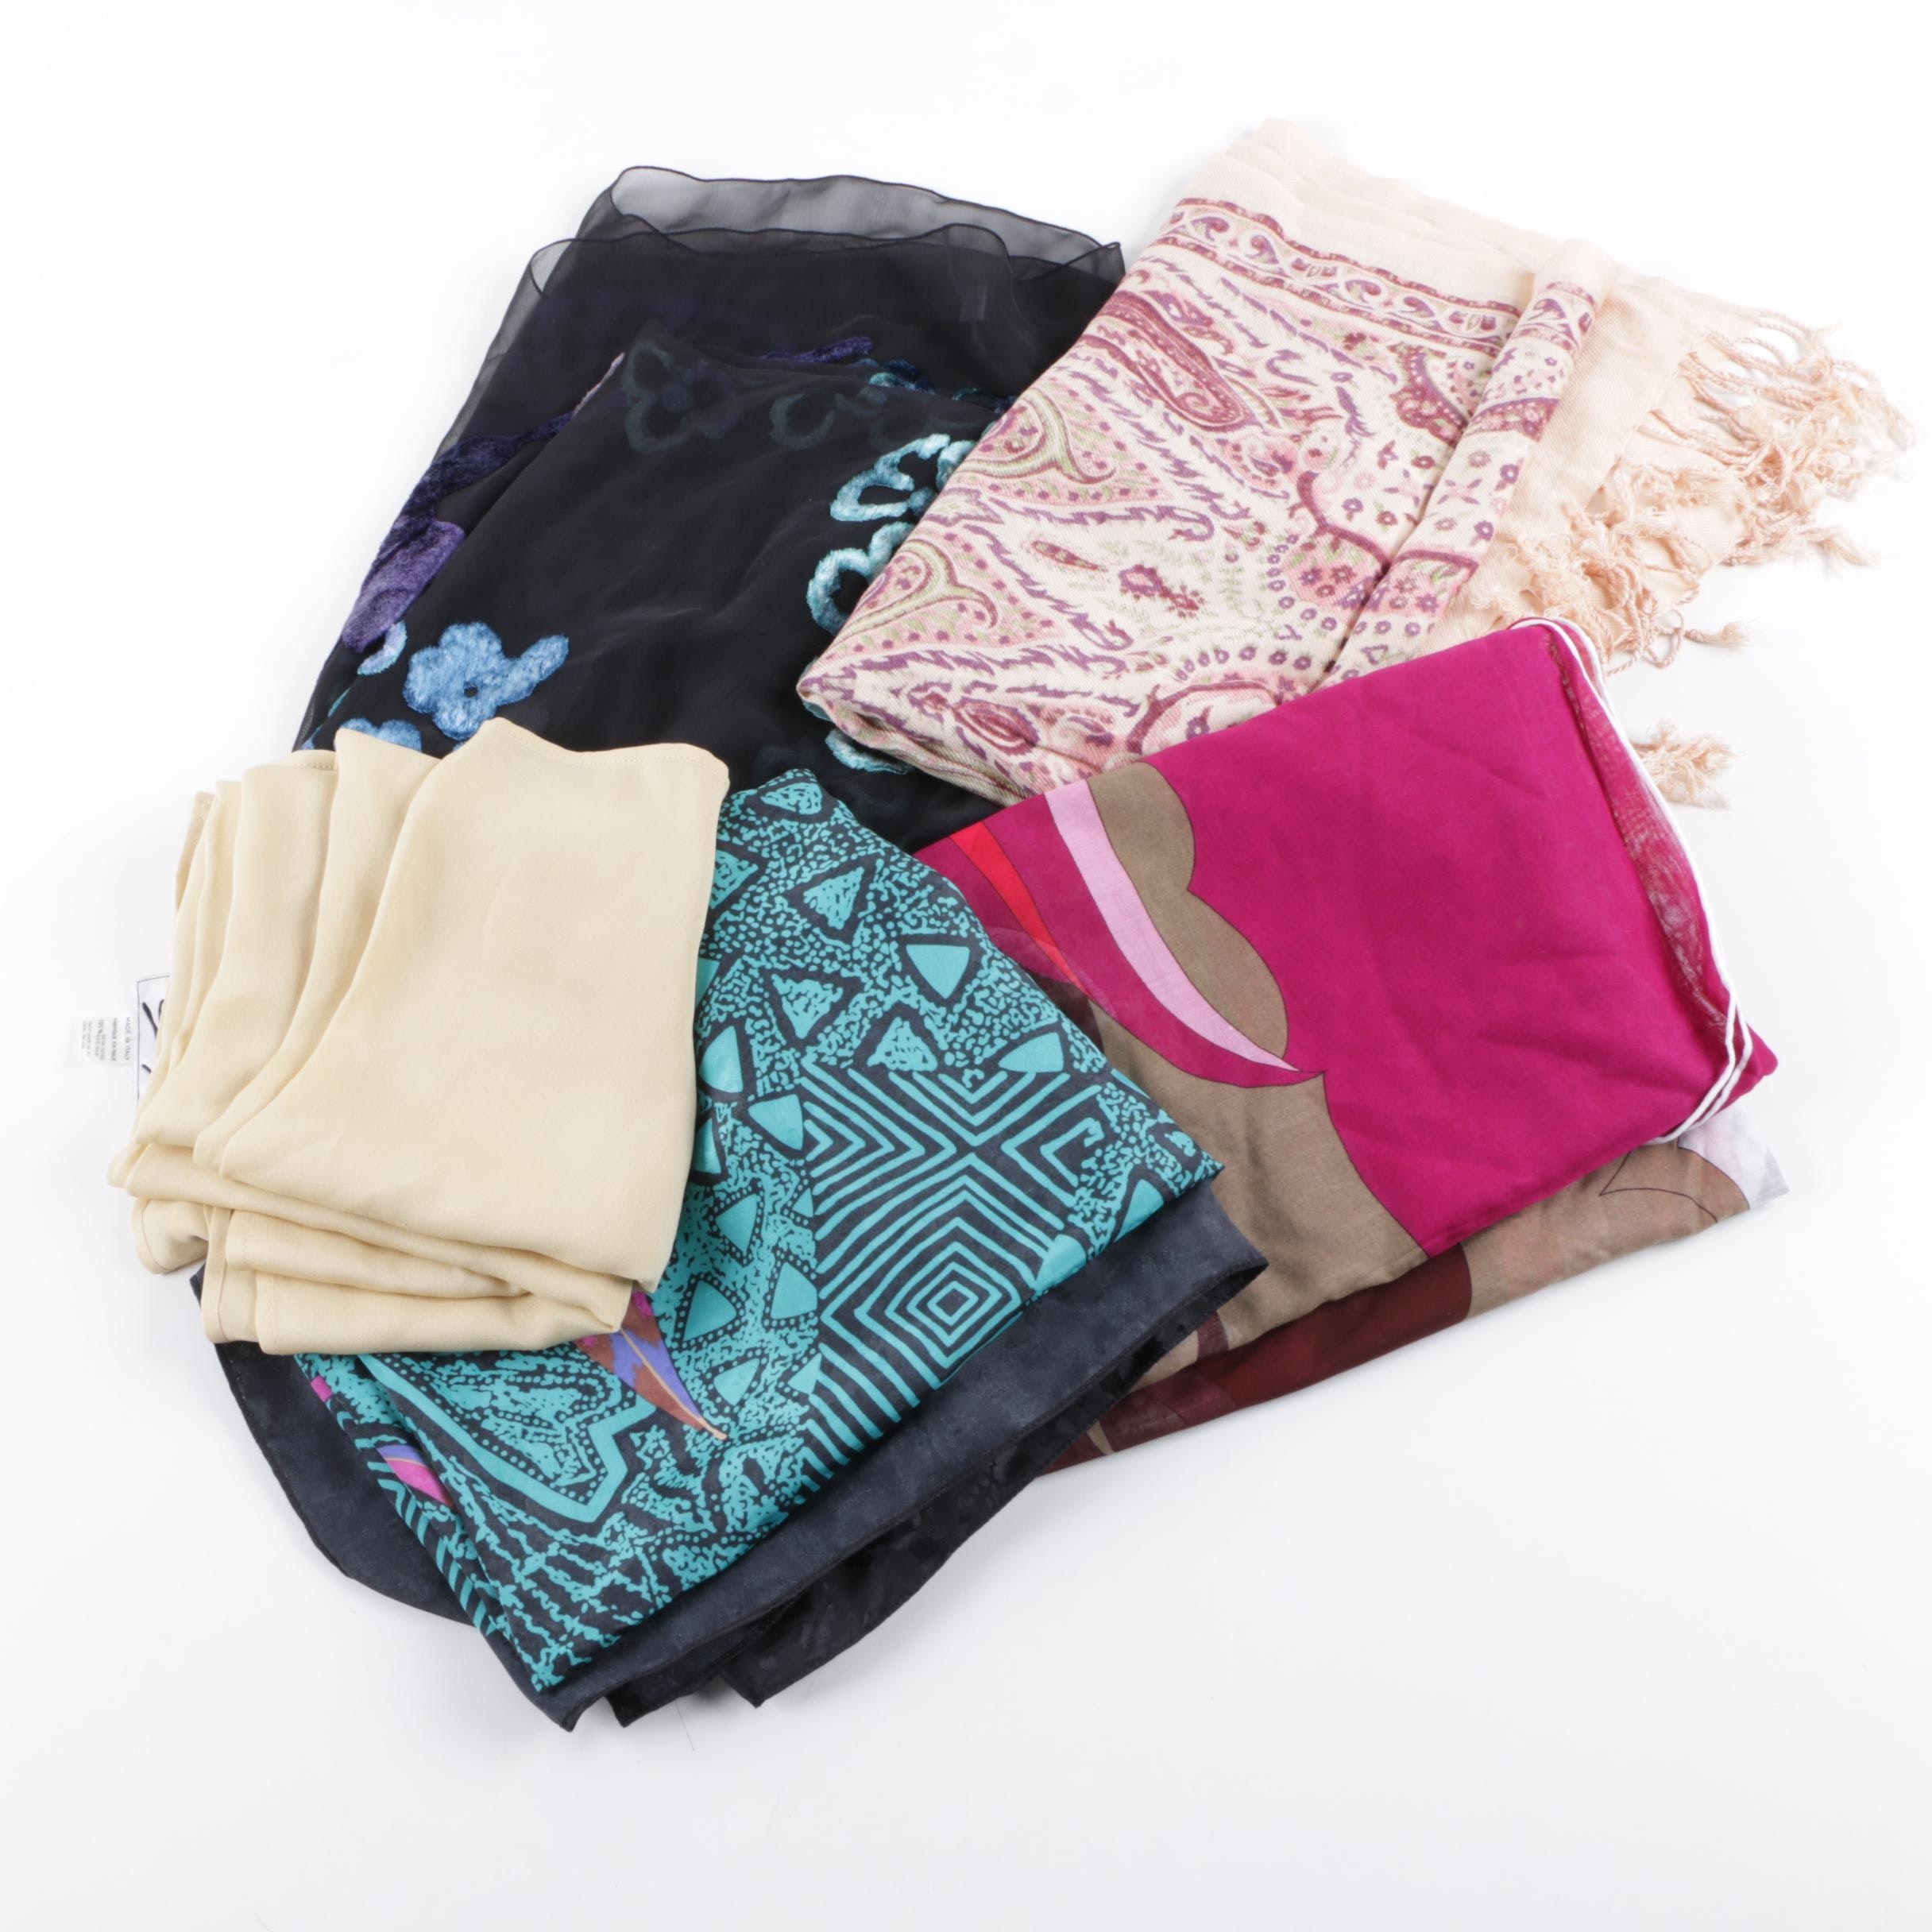 Designer Scarves Including Emilio Pucci and French Chenille Embroidery